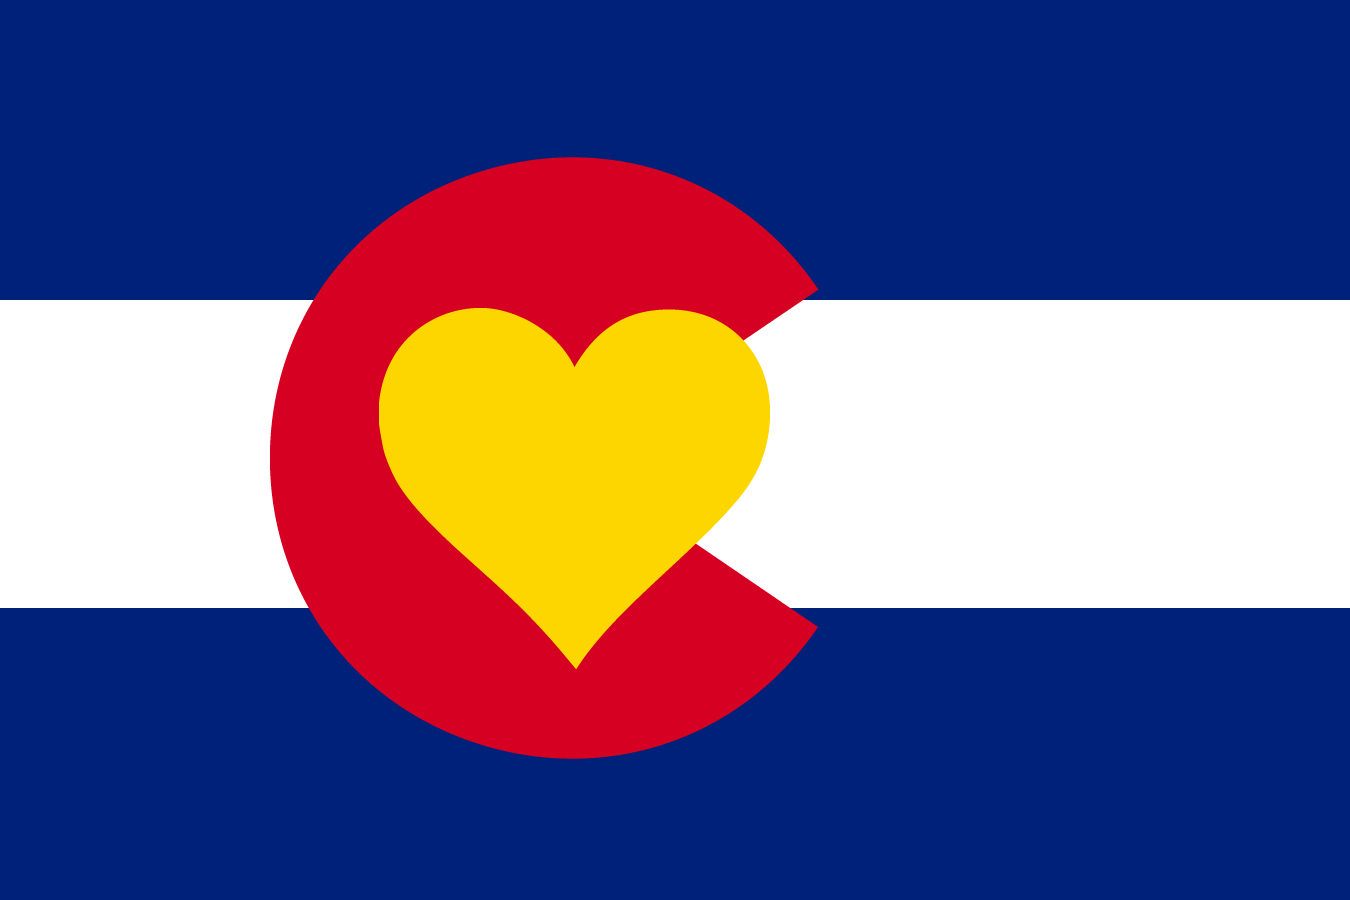 Colorado Love Flag - It's New and Different! It's New and Different!